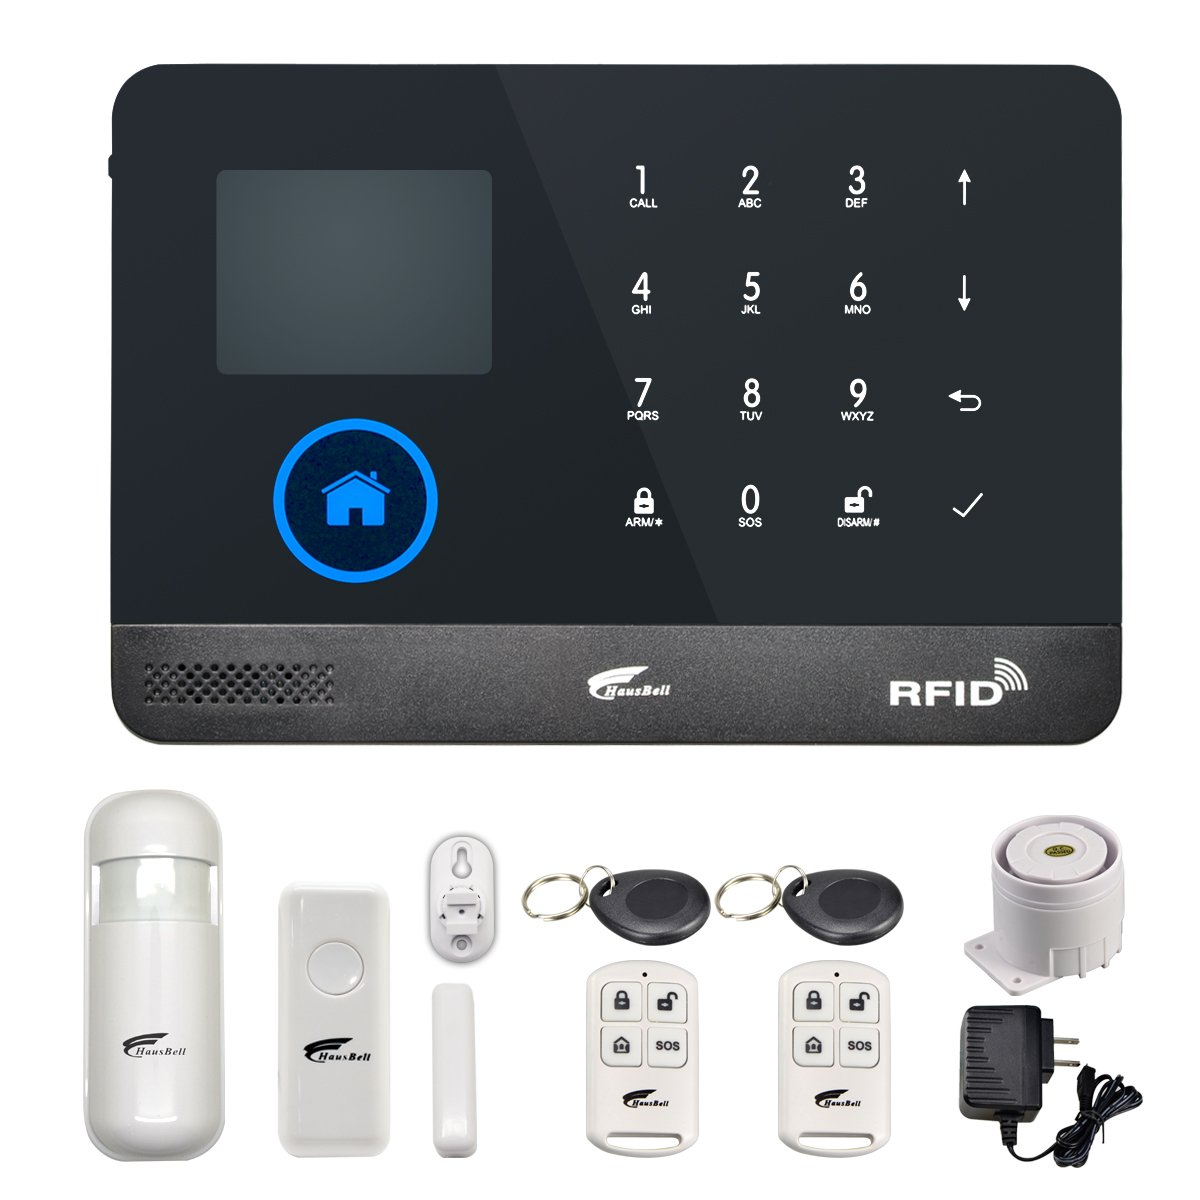 HAUSBELL Alarm Home Security System,3G & WiFi 2in1 Wireless Smart GSM Security Alarm 433MHz GSM Home&Business Office with Full Touch Screen, Auto Dial ...